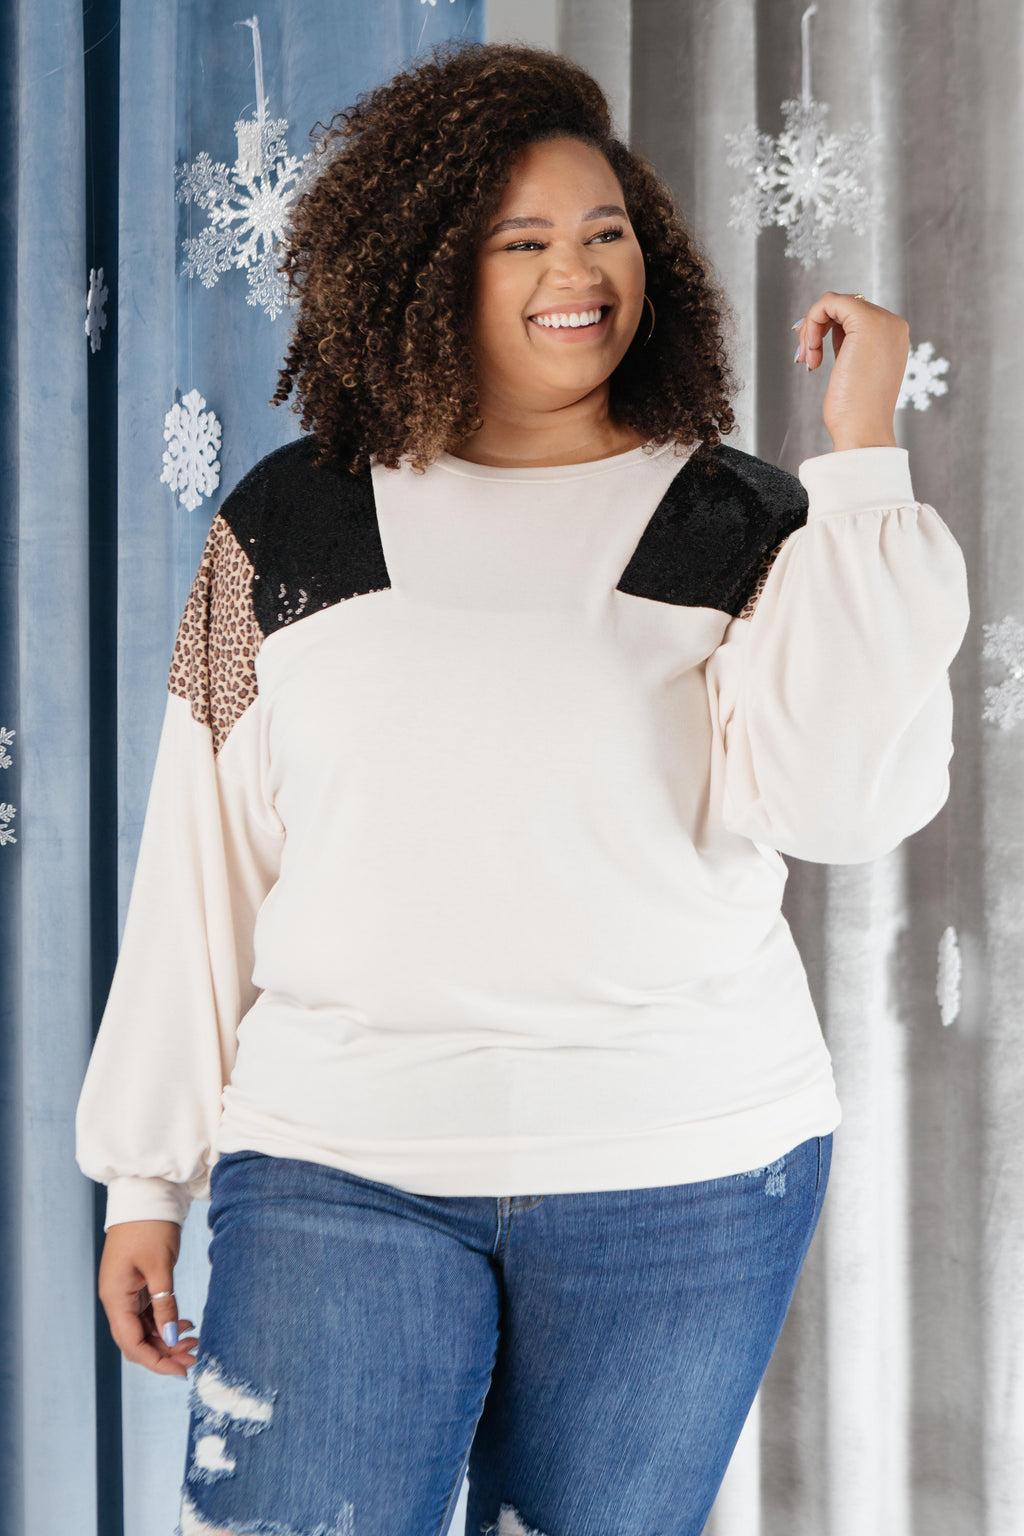 The Spotty Holiday Top-11-30-2020, 1XL, 2XL, 3XL, CMDB2020, Group A, Group B, Group C, Group V, Group X, Group Z, Large, Medium, Small, Tops, XL, XS-Womens Artisan USA American Made Clothing Accessories